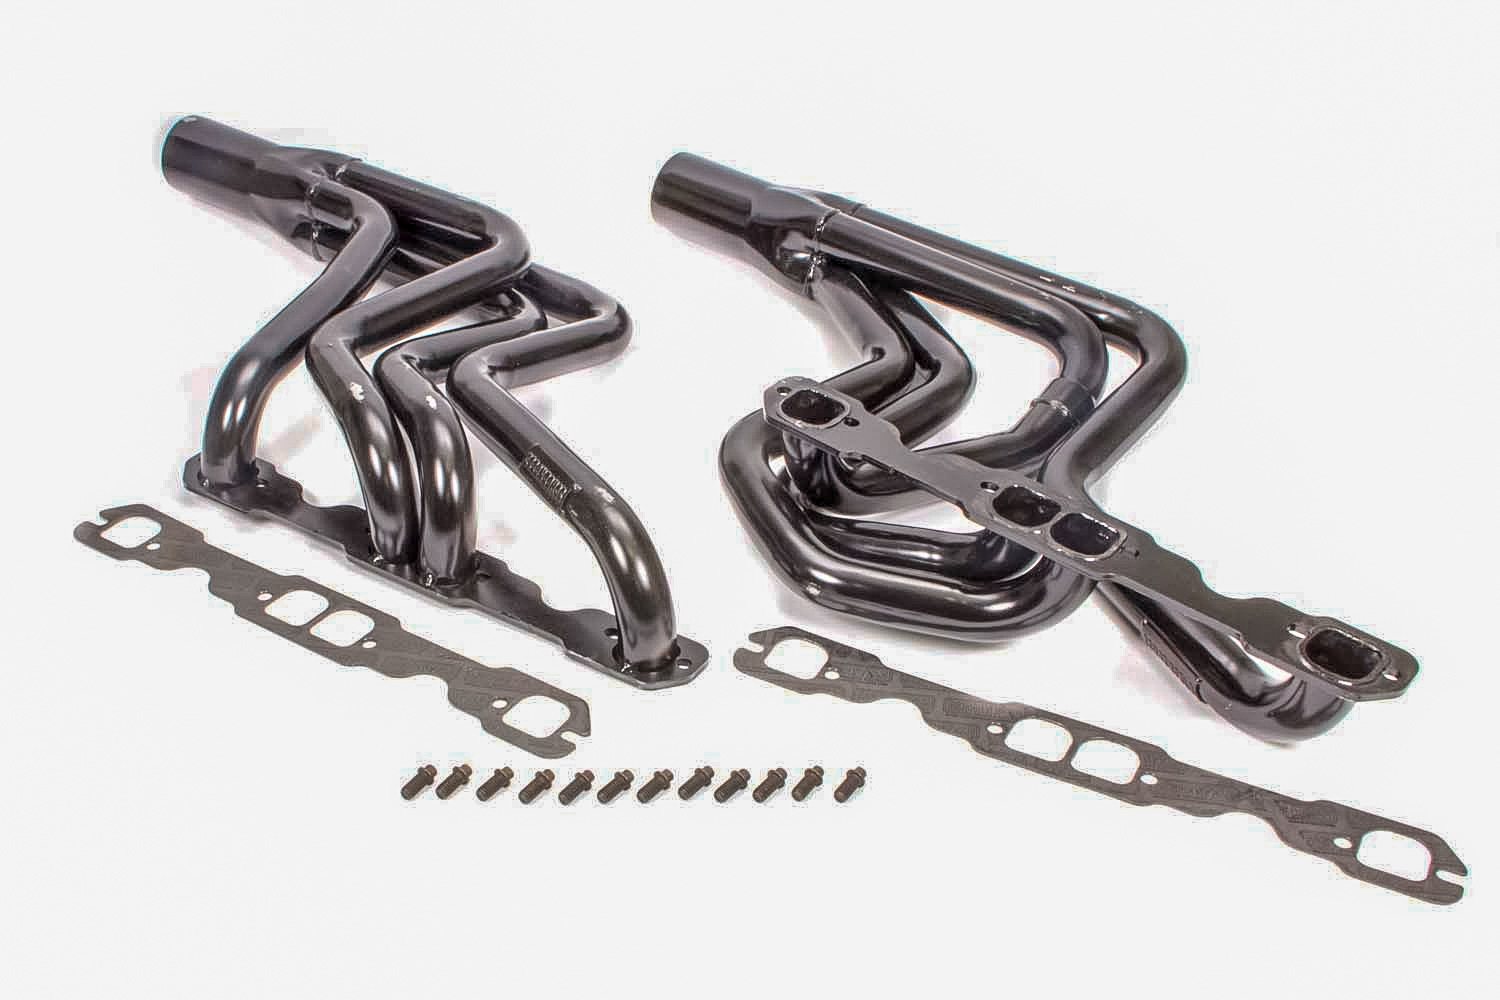 Schoenfeld 181-406LVGCM2-3 Headers, Dirt Late Model, 1-5/8 to 1-7/8 in Primary, 3 in Collector, Steel, Black Paint, Small Block Chevy, Kit